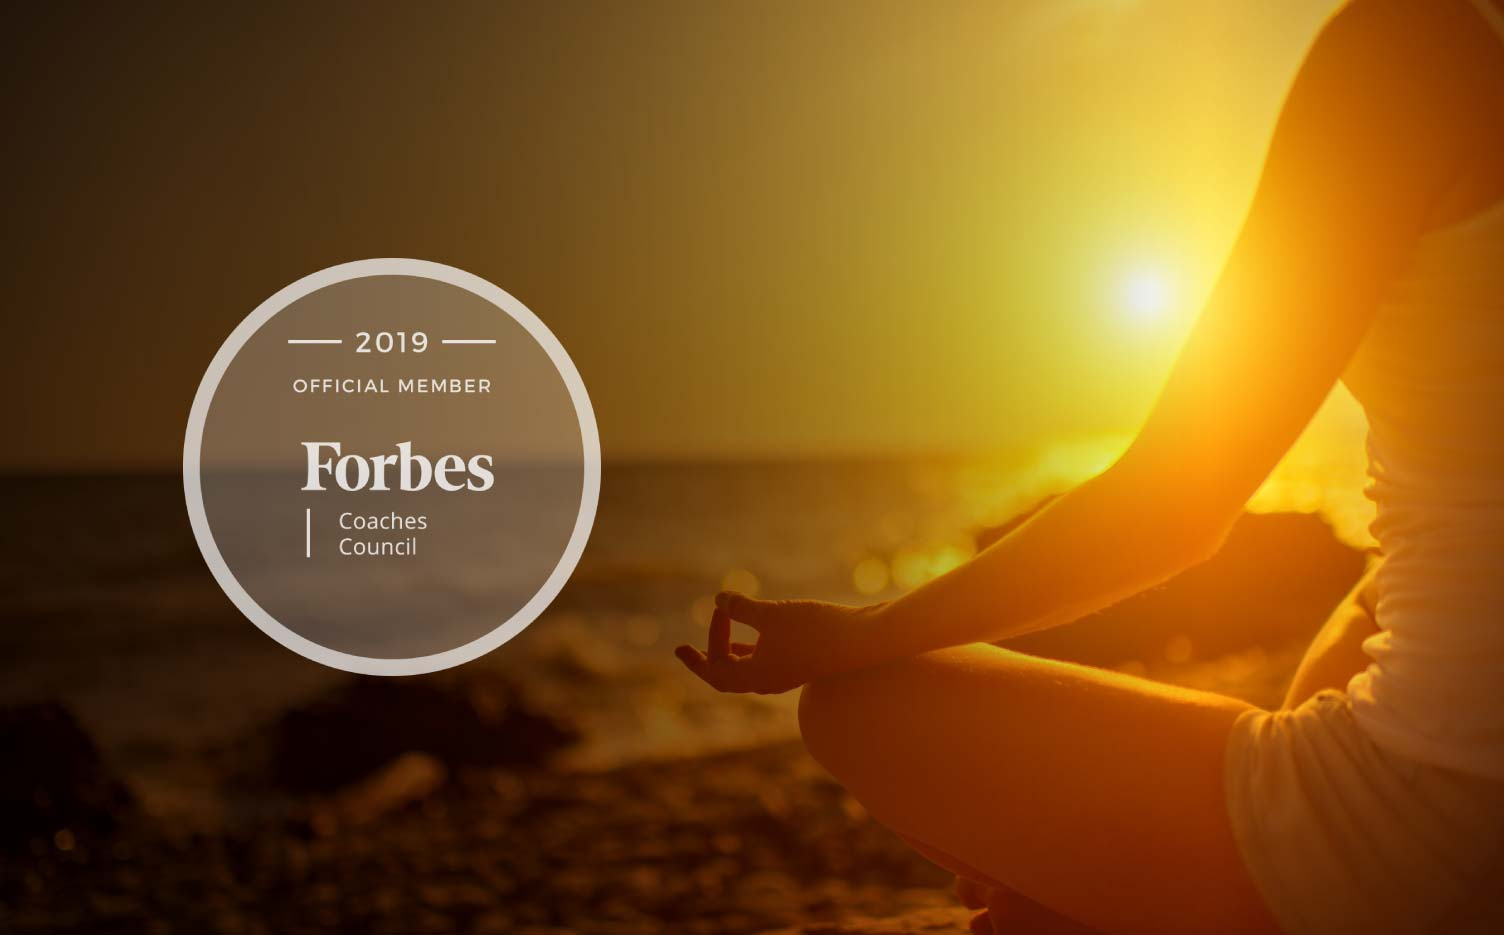 Jon's Dwoskin's Forbes Coaches Council Article: Three Things To Do Every Morning To Find The Balance You Desire